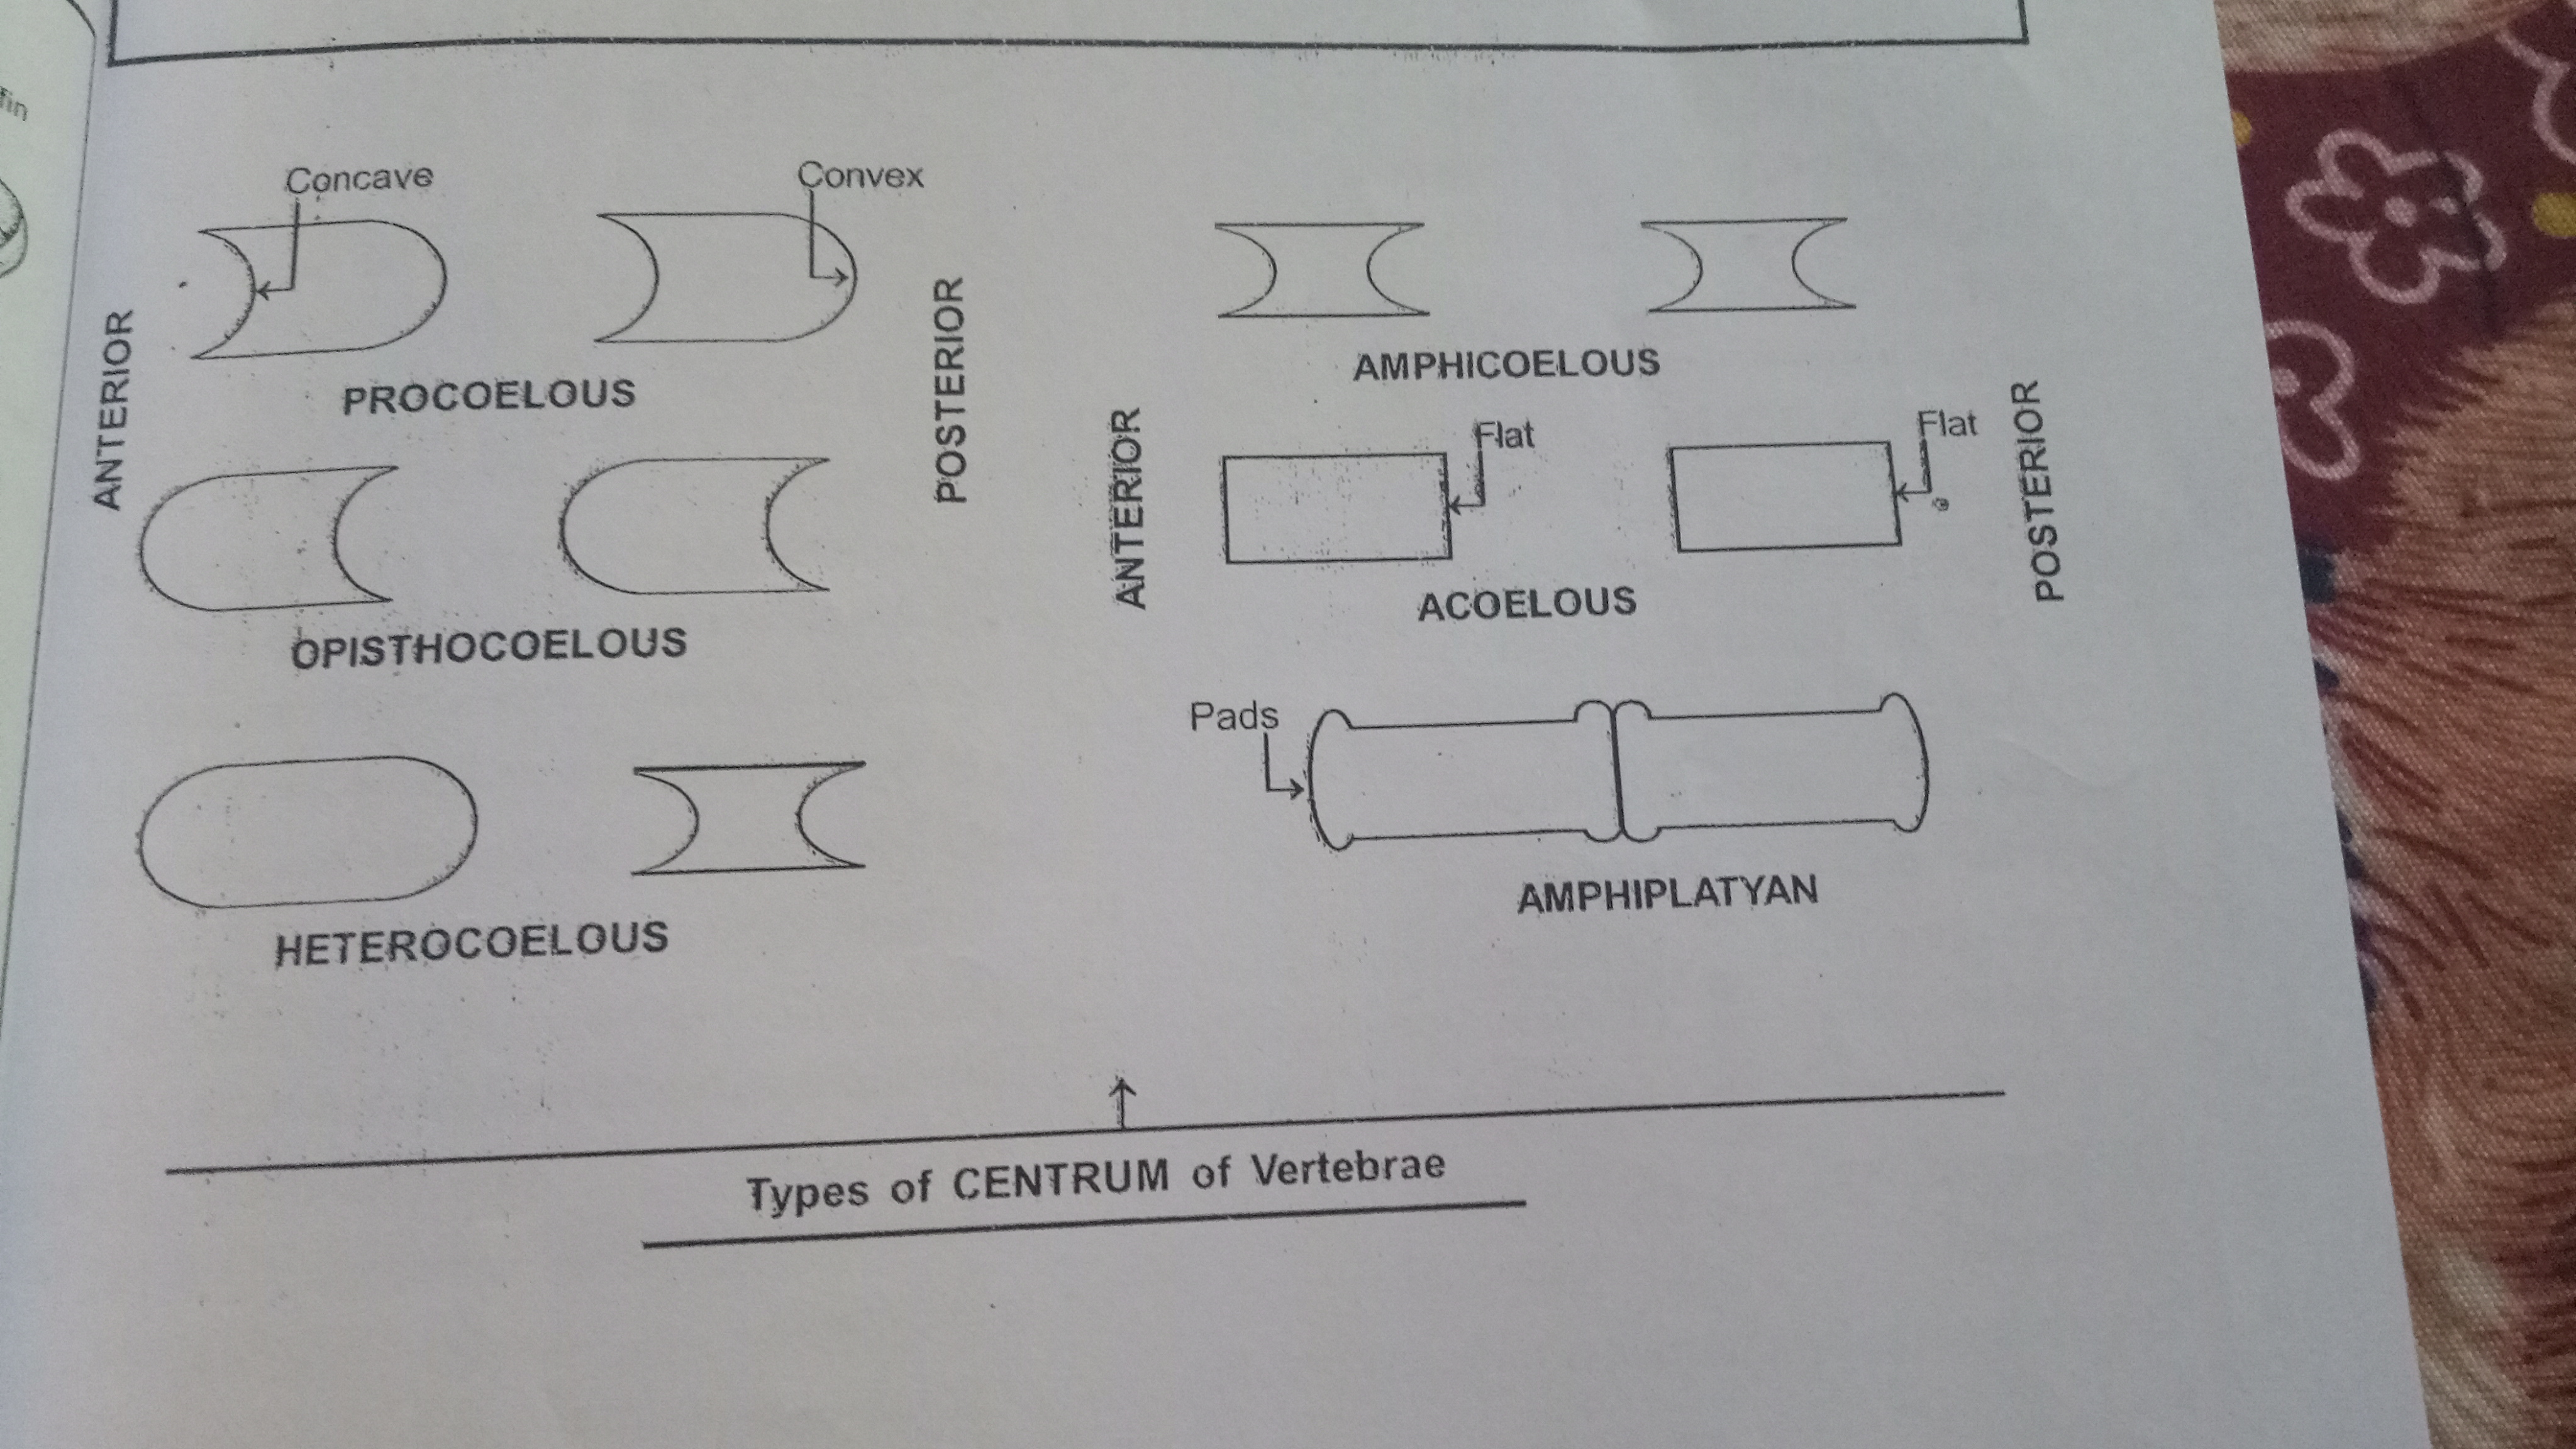 What Are The Types Of Centrum Of Vertebrae Brainly